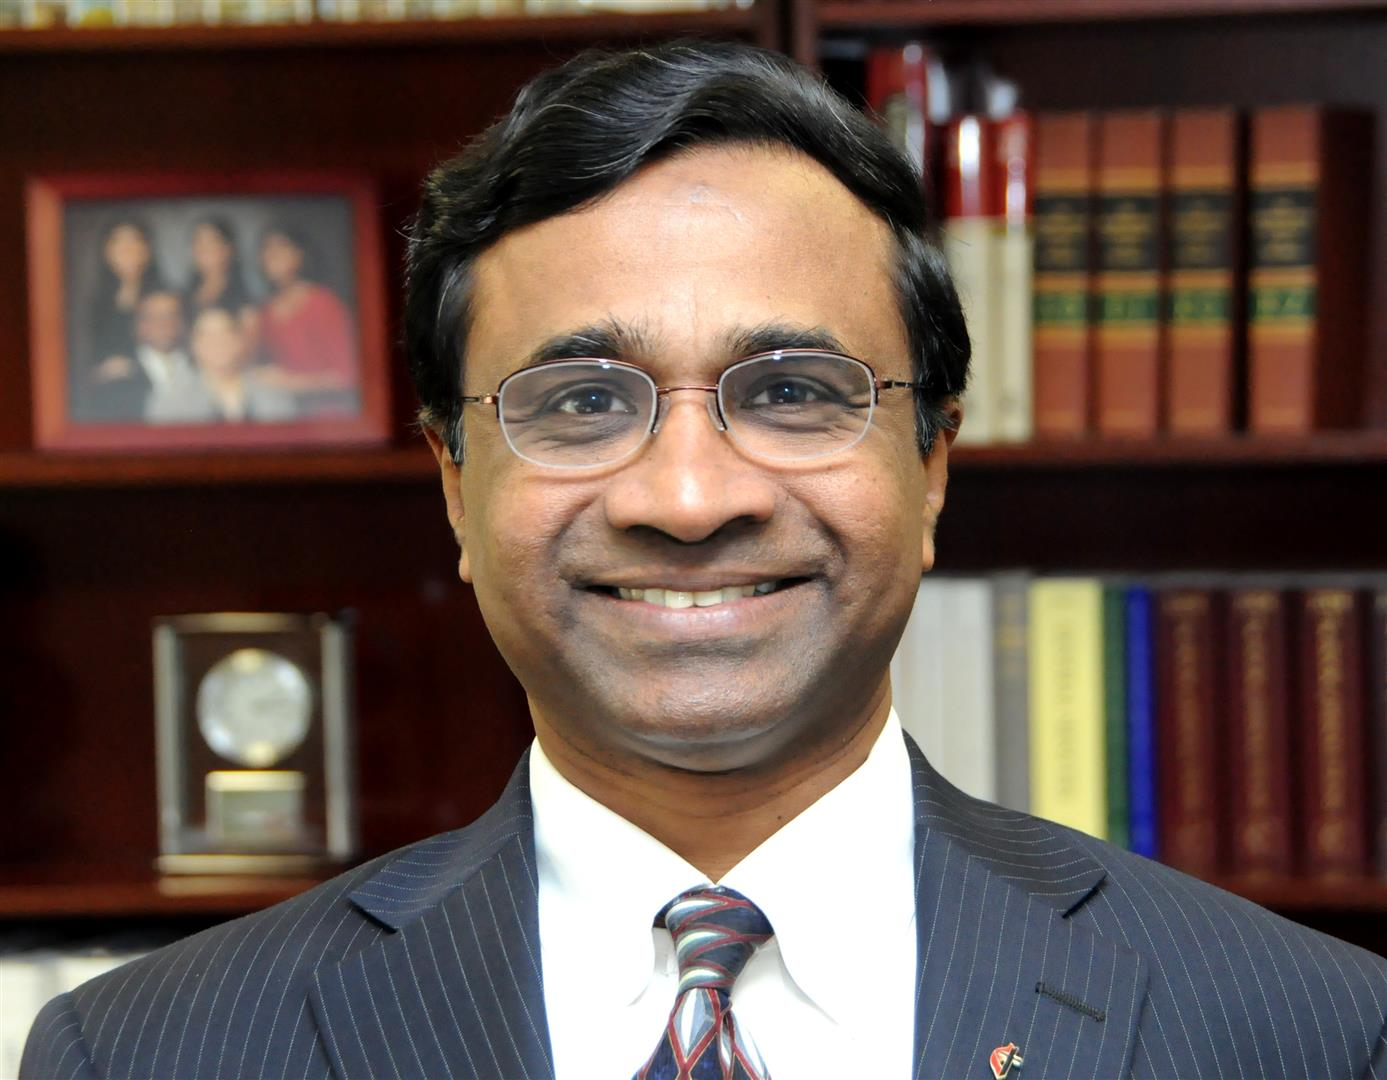 Dr Chris Kurien